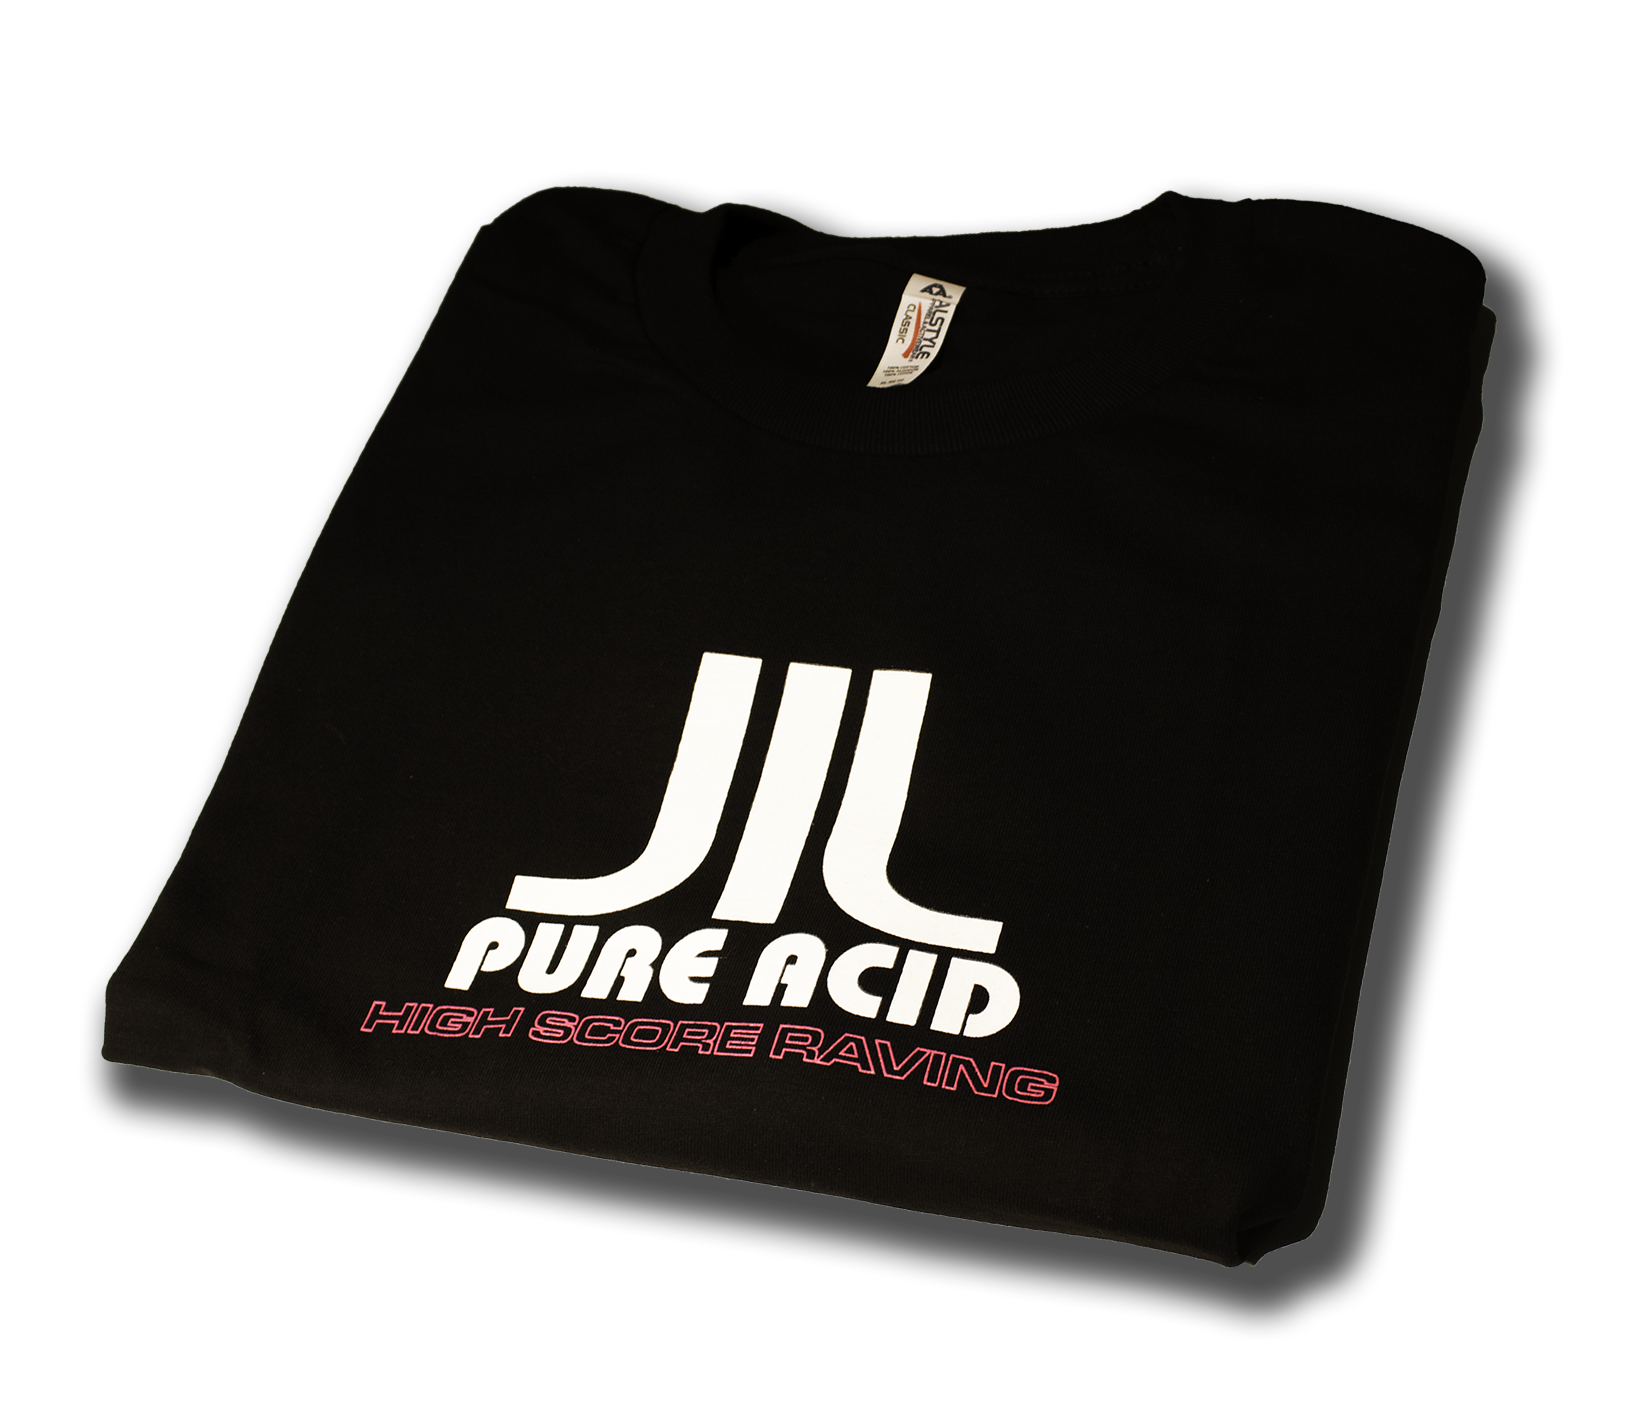 PURE ACID SHIRTS